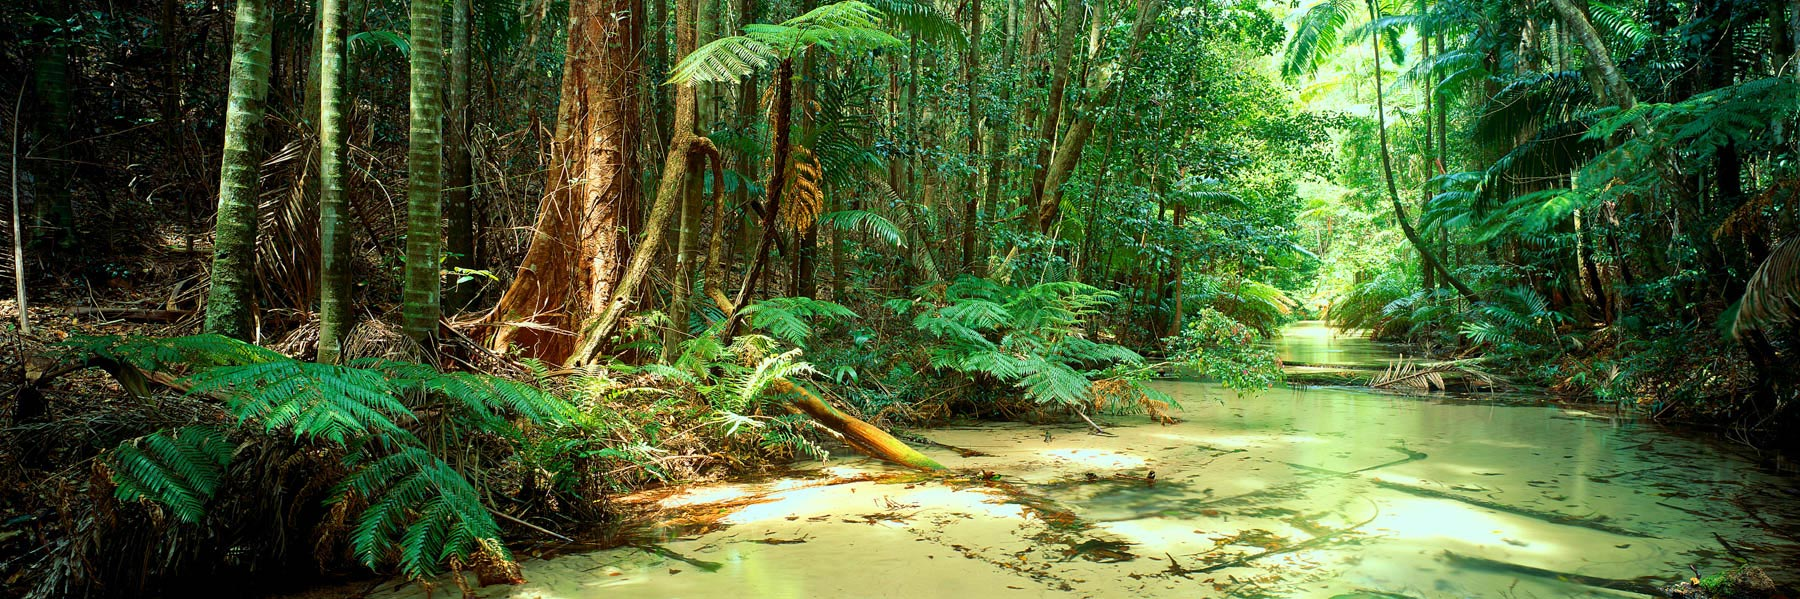 The crystal clear waters of Wanggoolba Creek winding through the tropical rainforest on Fraser Island, Qld, Australia.